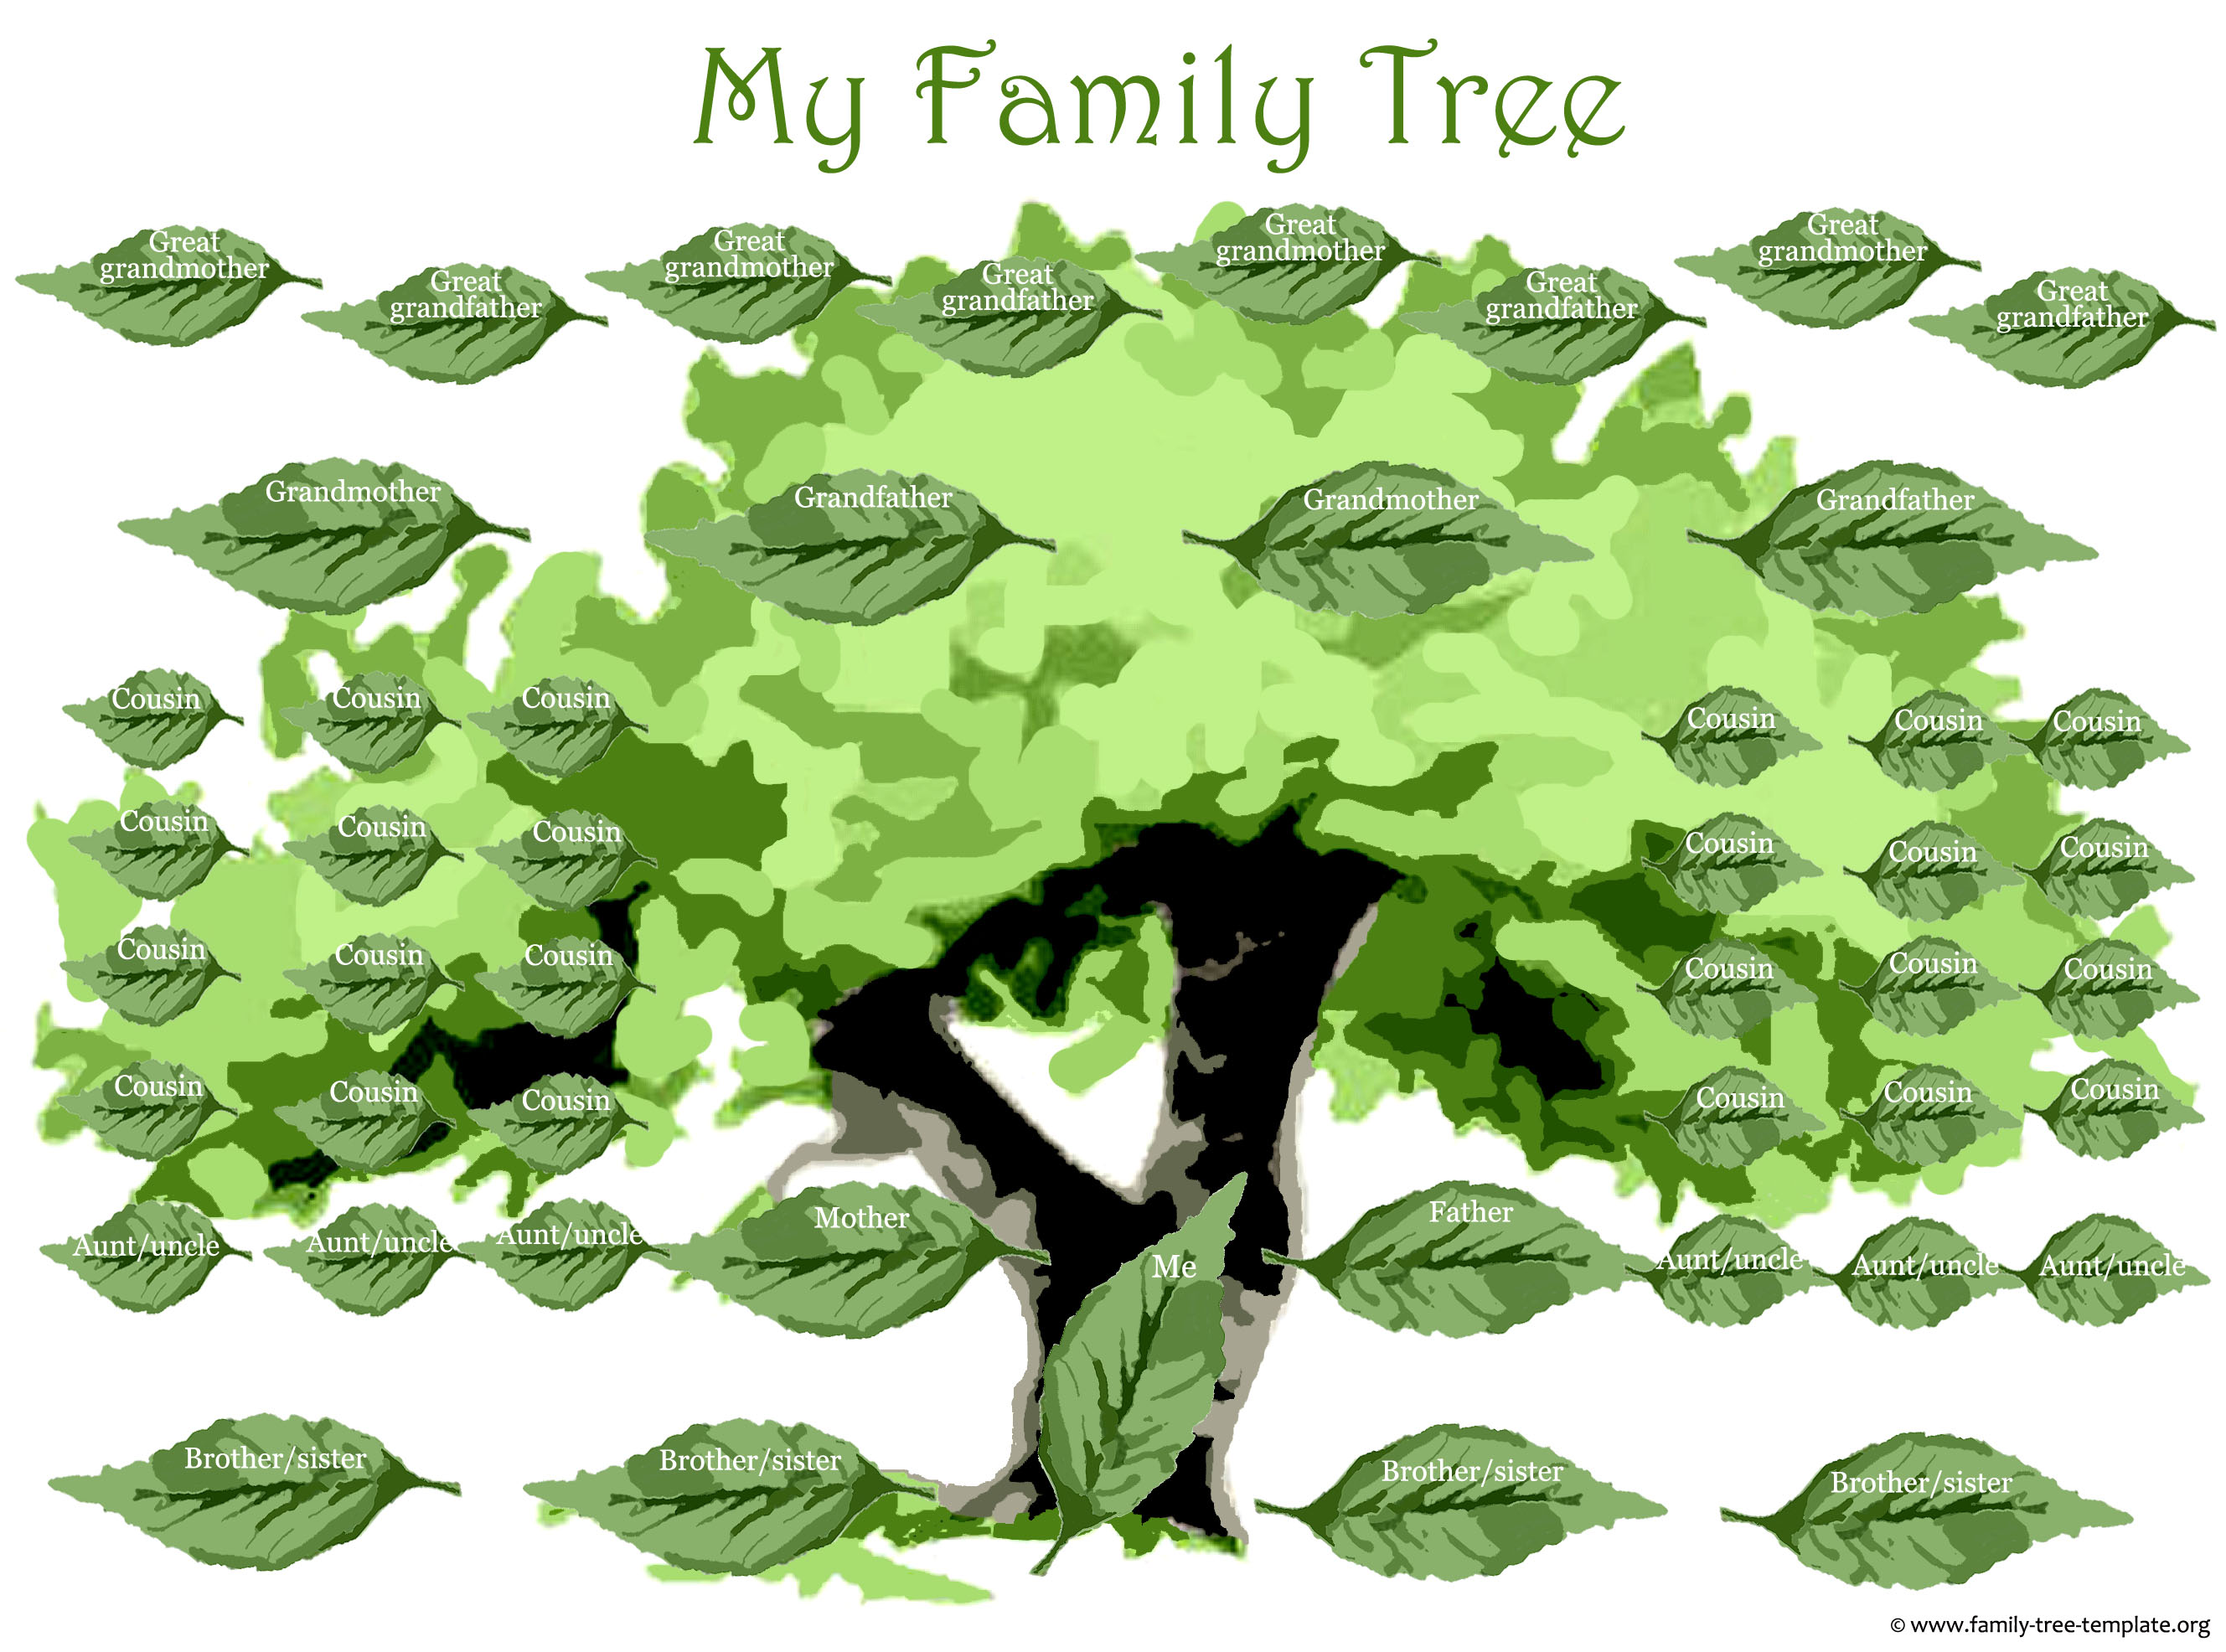 Big family tree form to include the whole immediate family.